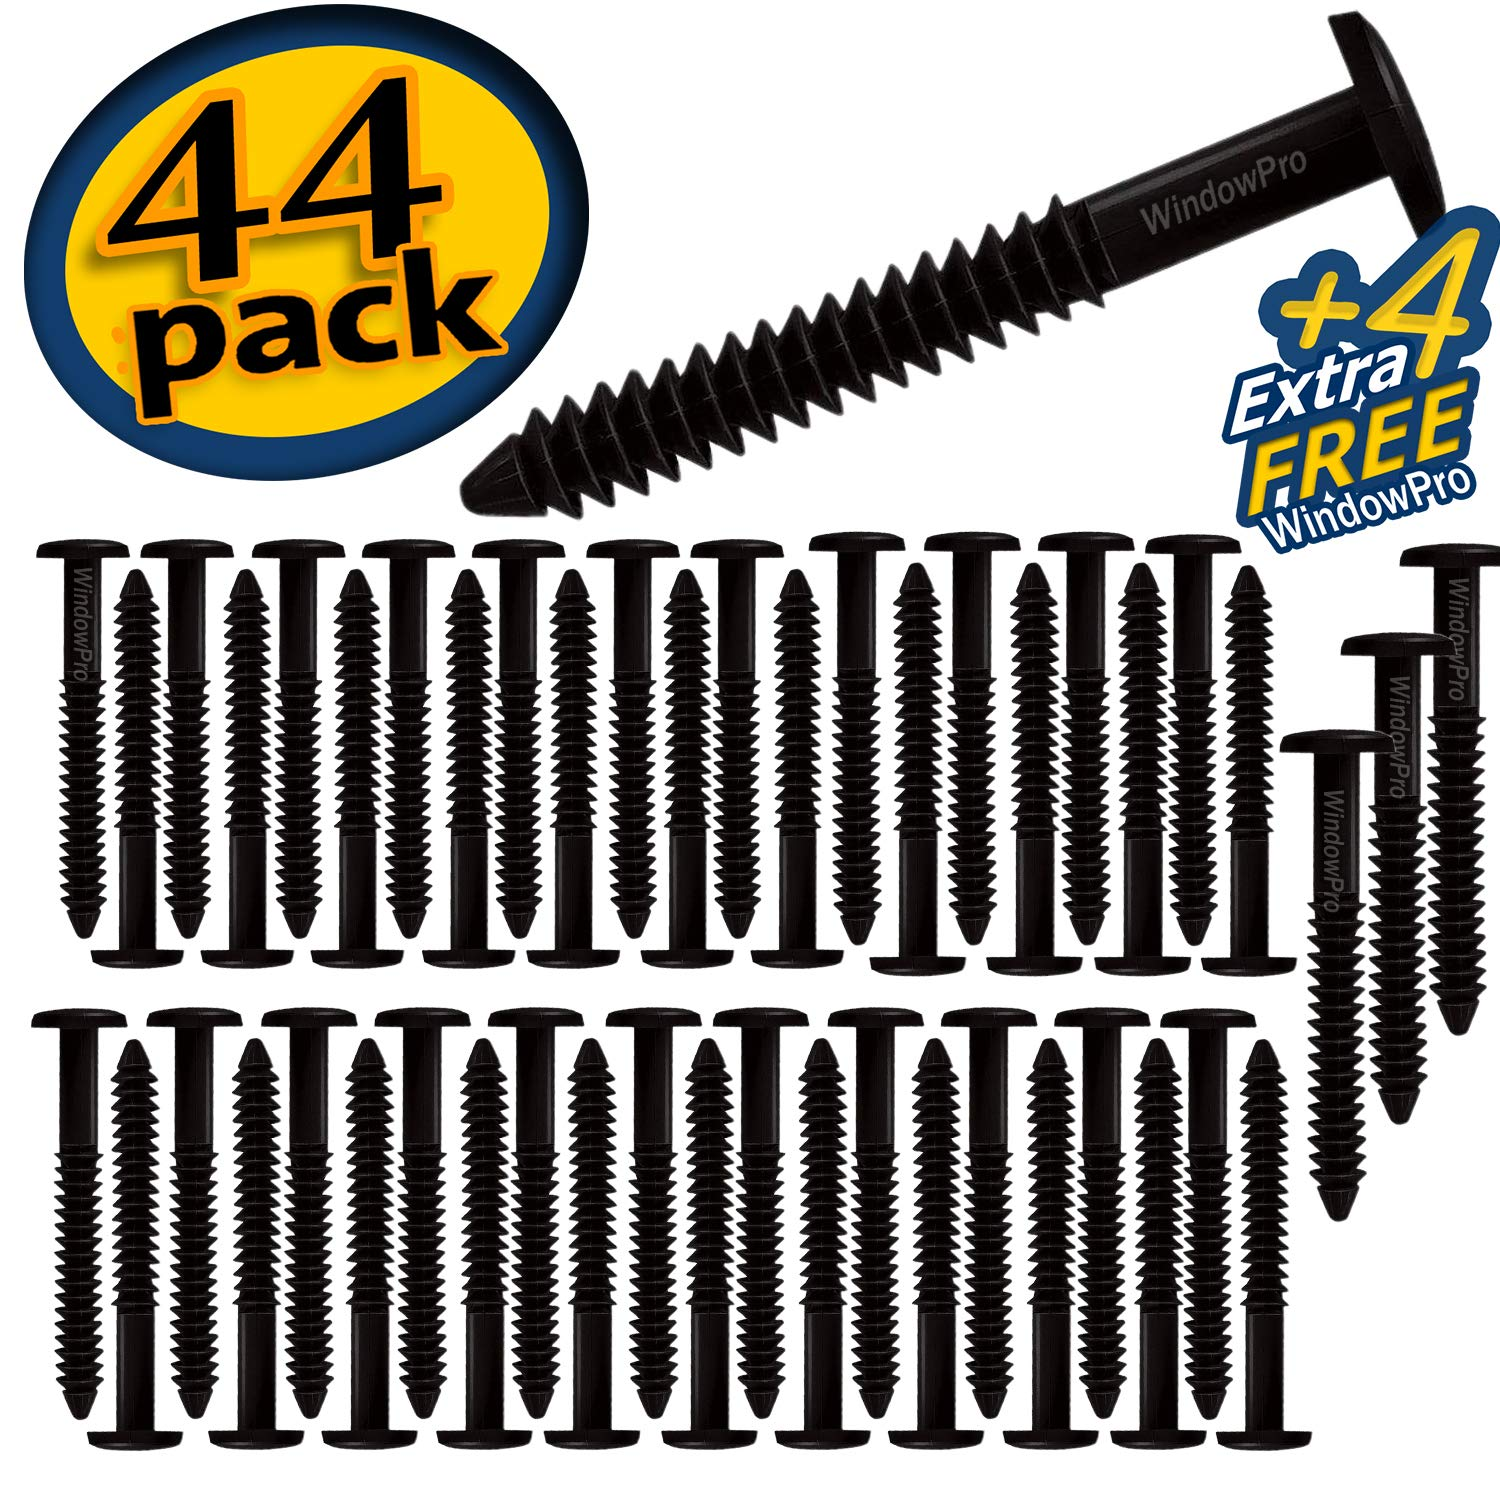 Window Shutters Panel Peg Loks Spikes 3 inch 48 pack (Black) by WindowPro